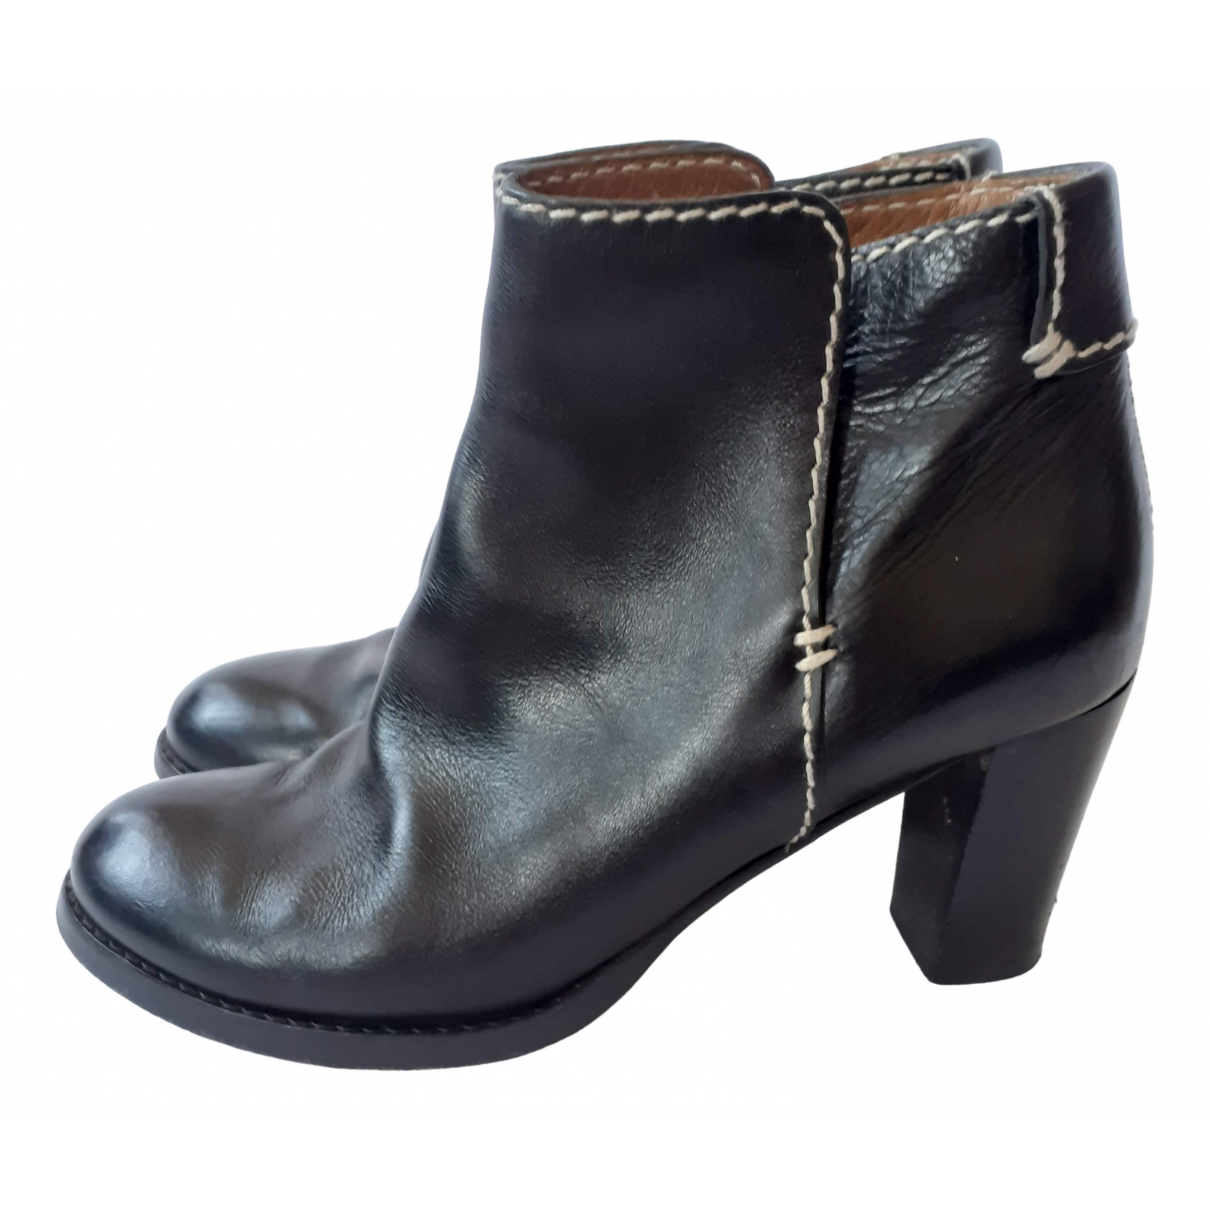 Chloé \N Black Leather Ankle boots for Women 41 EU